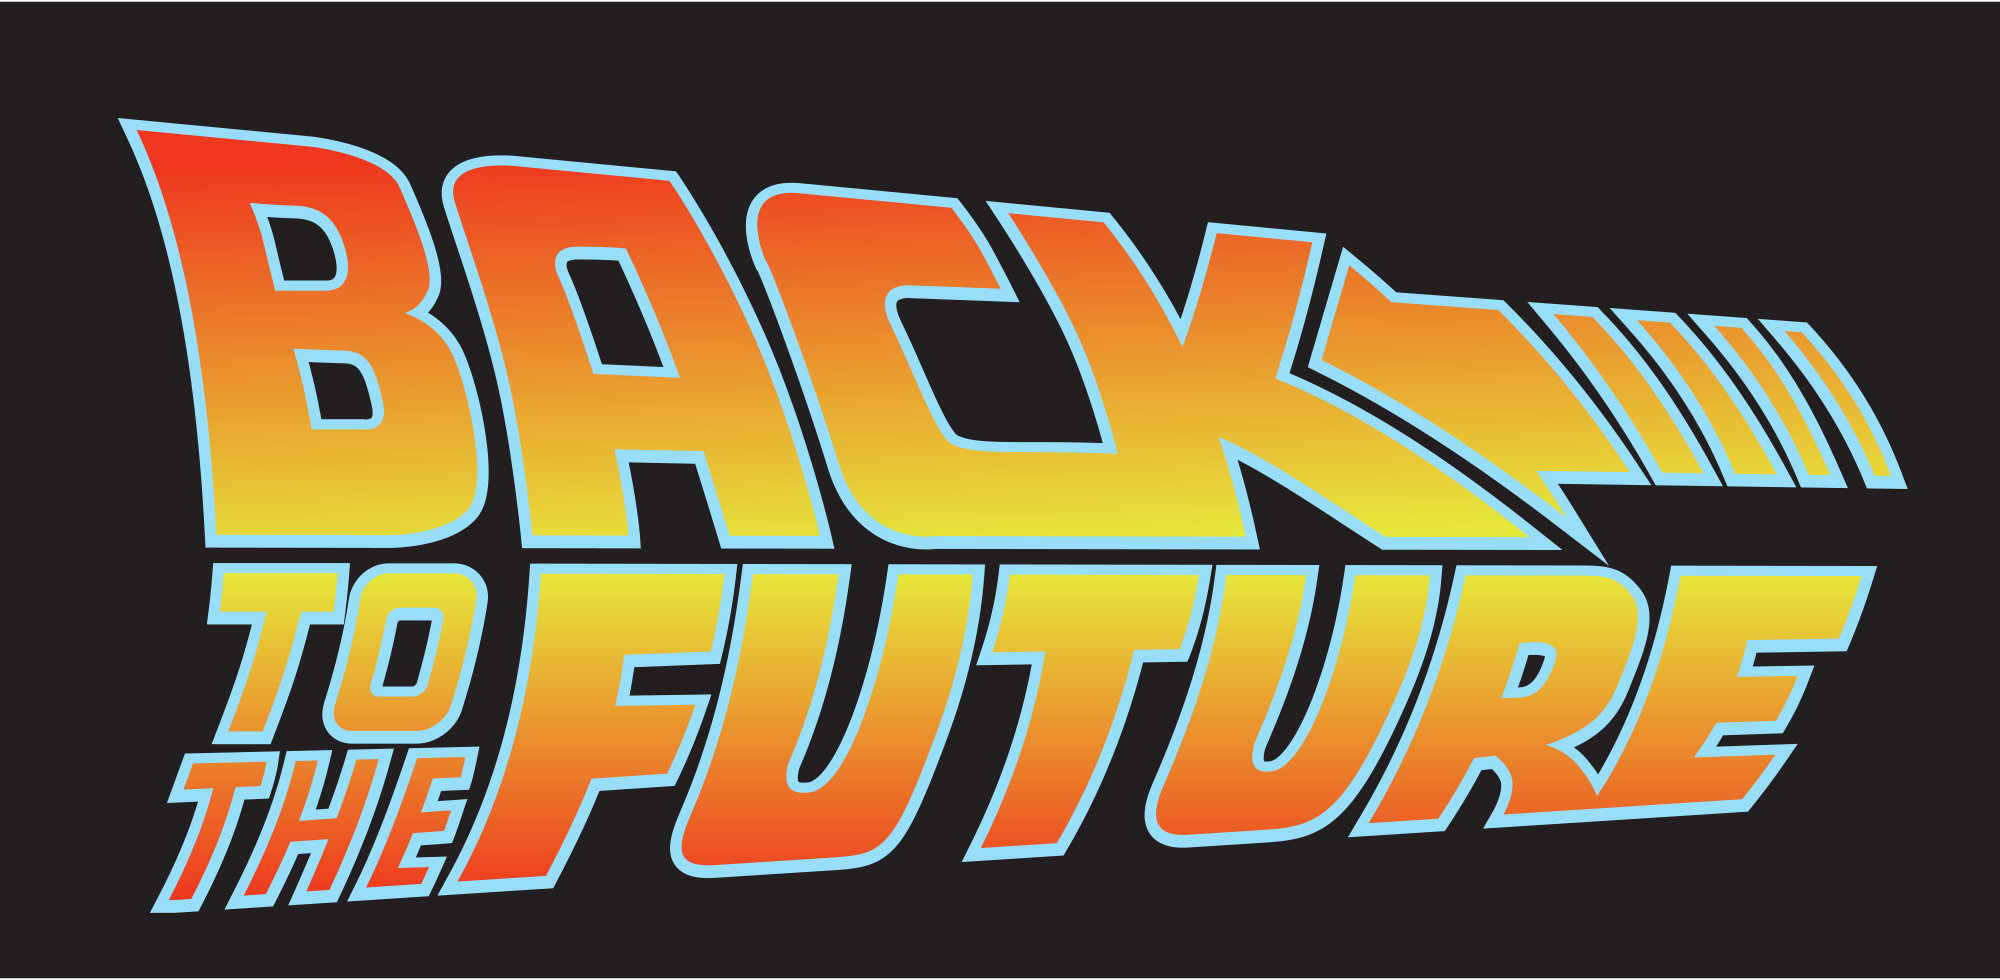 back to the future logo.